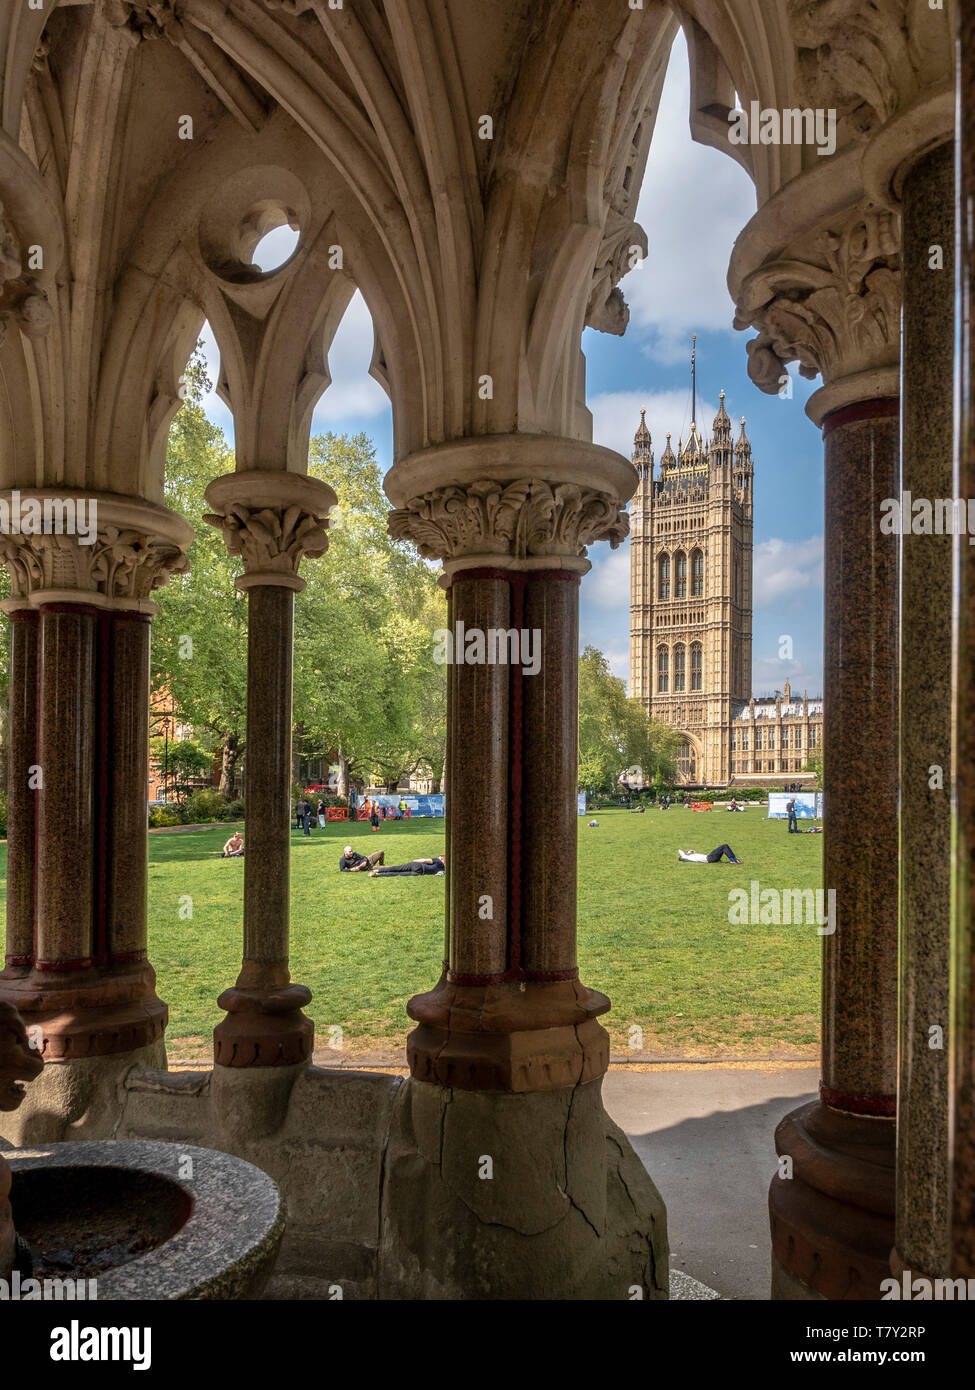 Buxton Memorial Fountain, by Charles Buxton and Samuel Sanders Teulon, celebrating the emancipation of slaves in the British Empire in 1834, Victoria  Stock Photo